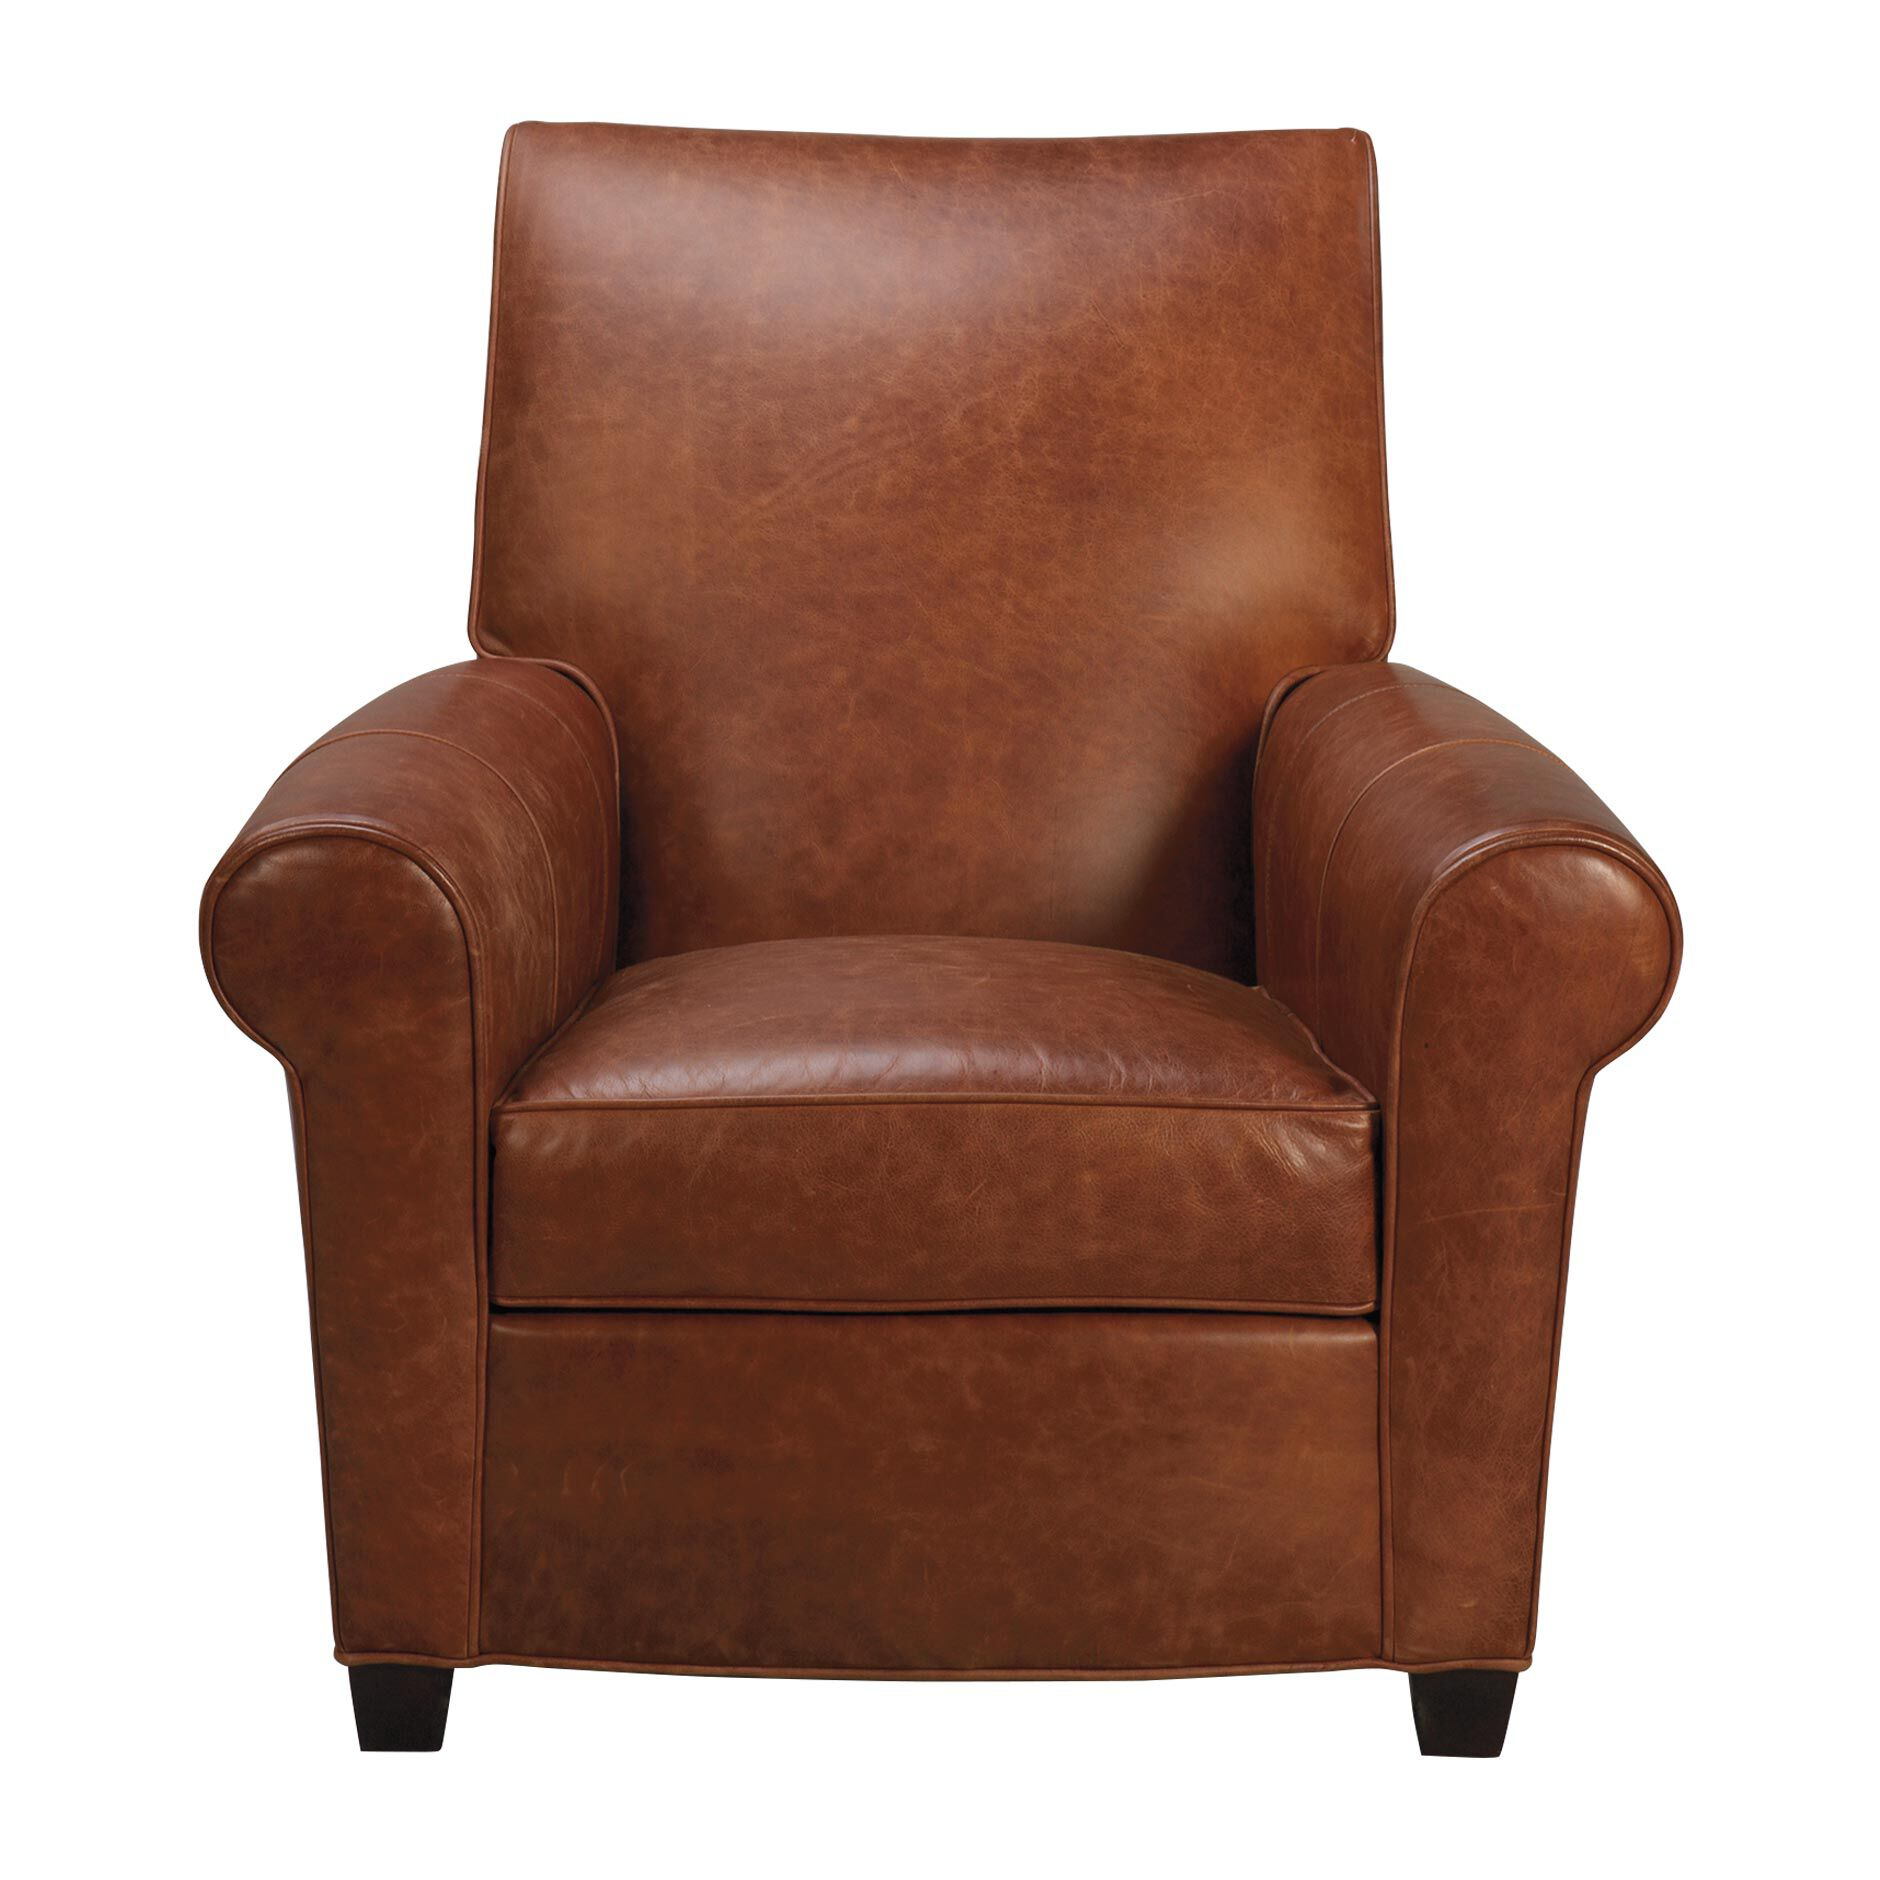 bentley leather chair large - Brown Leather Club Chair